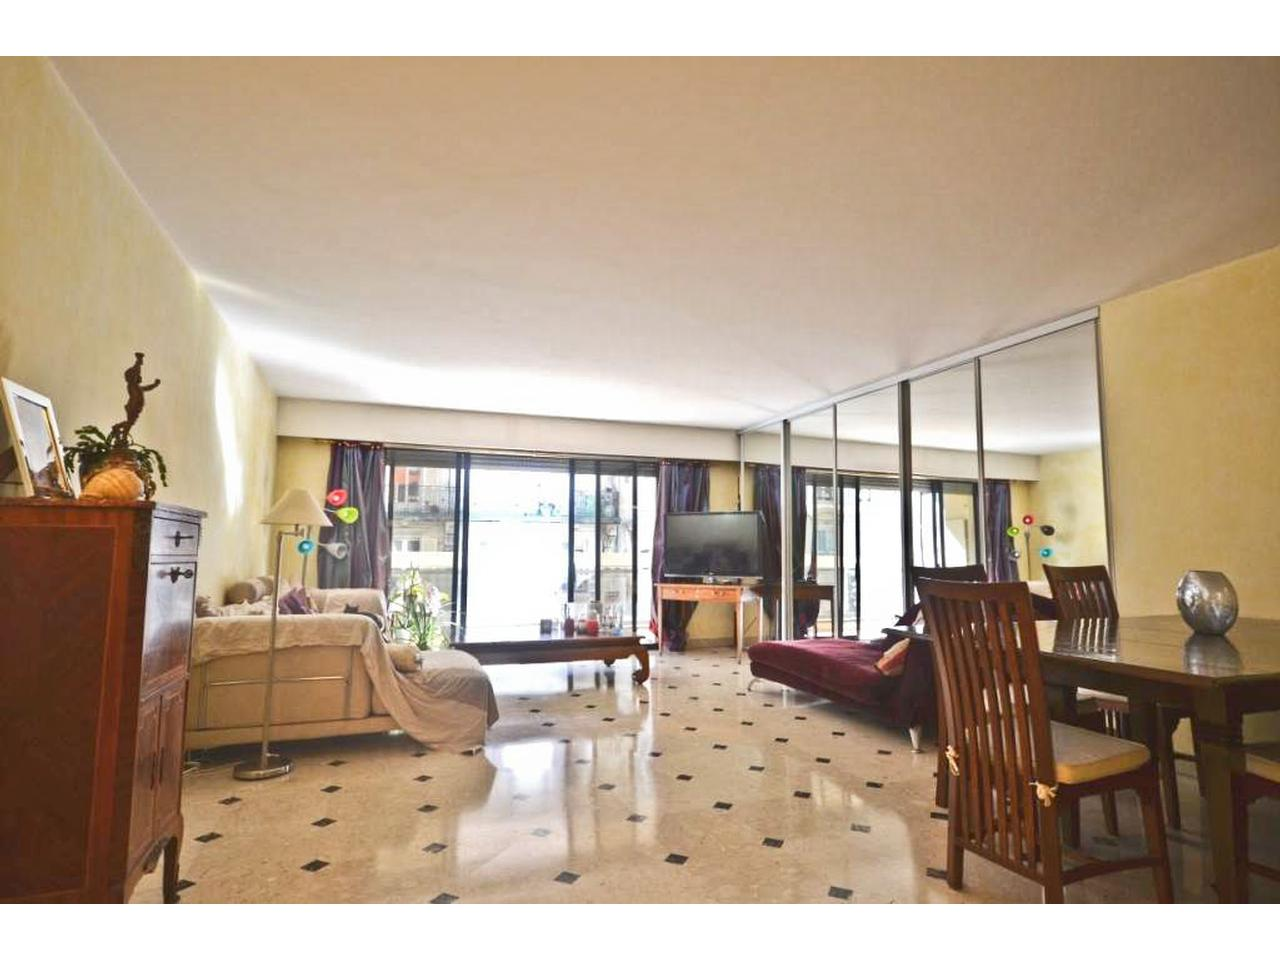 Immobilier Appartement Nice Appartement a vendre nice carre d or -> Roche Bobois A Vendre Nice